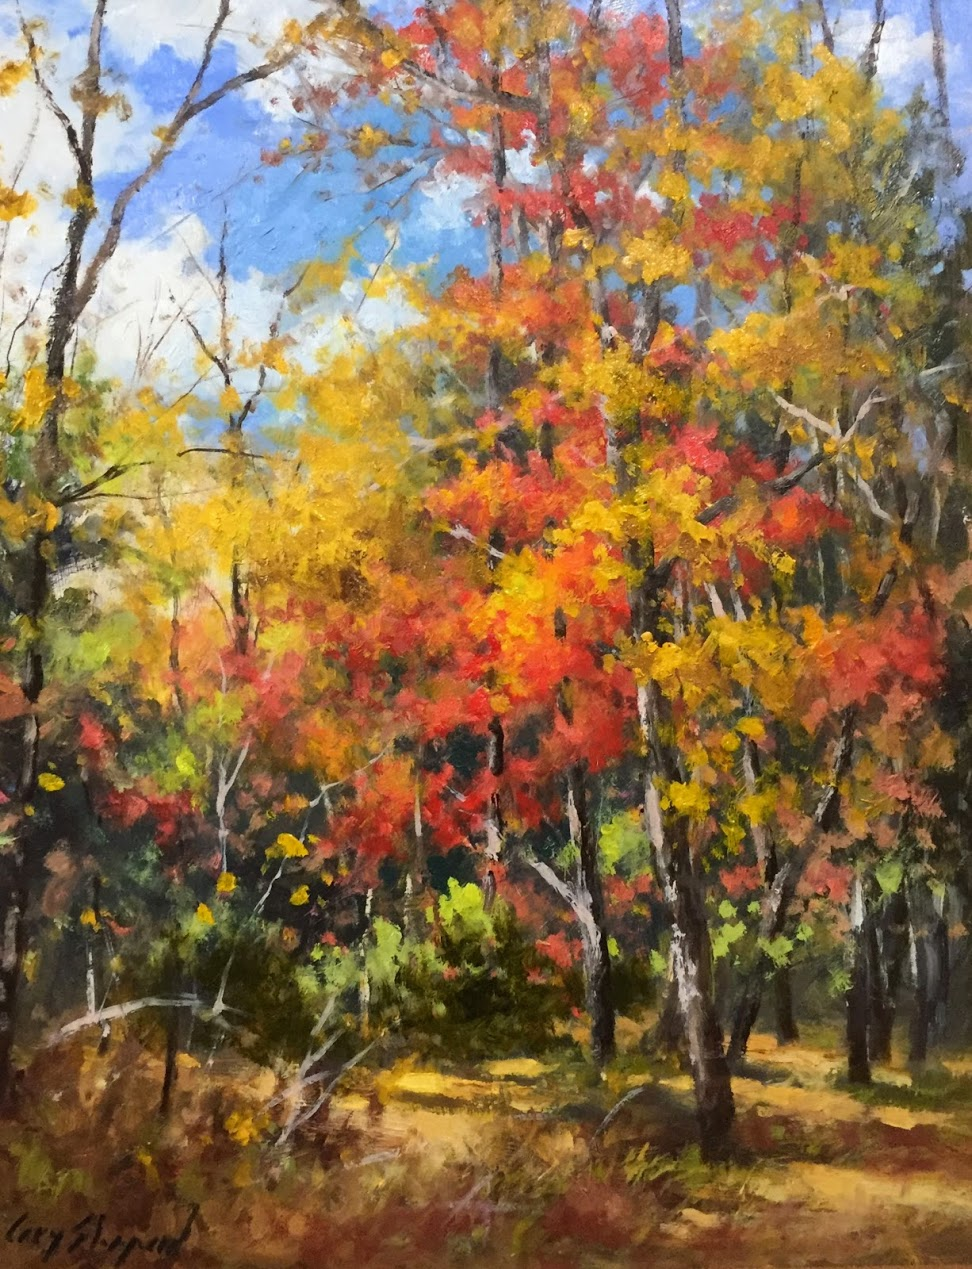 GS October Woods 16x20 oil 2600.